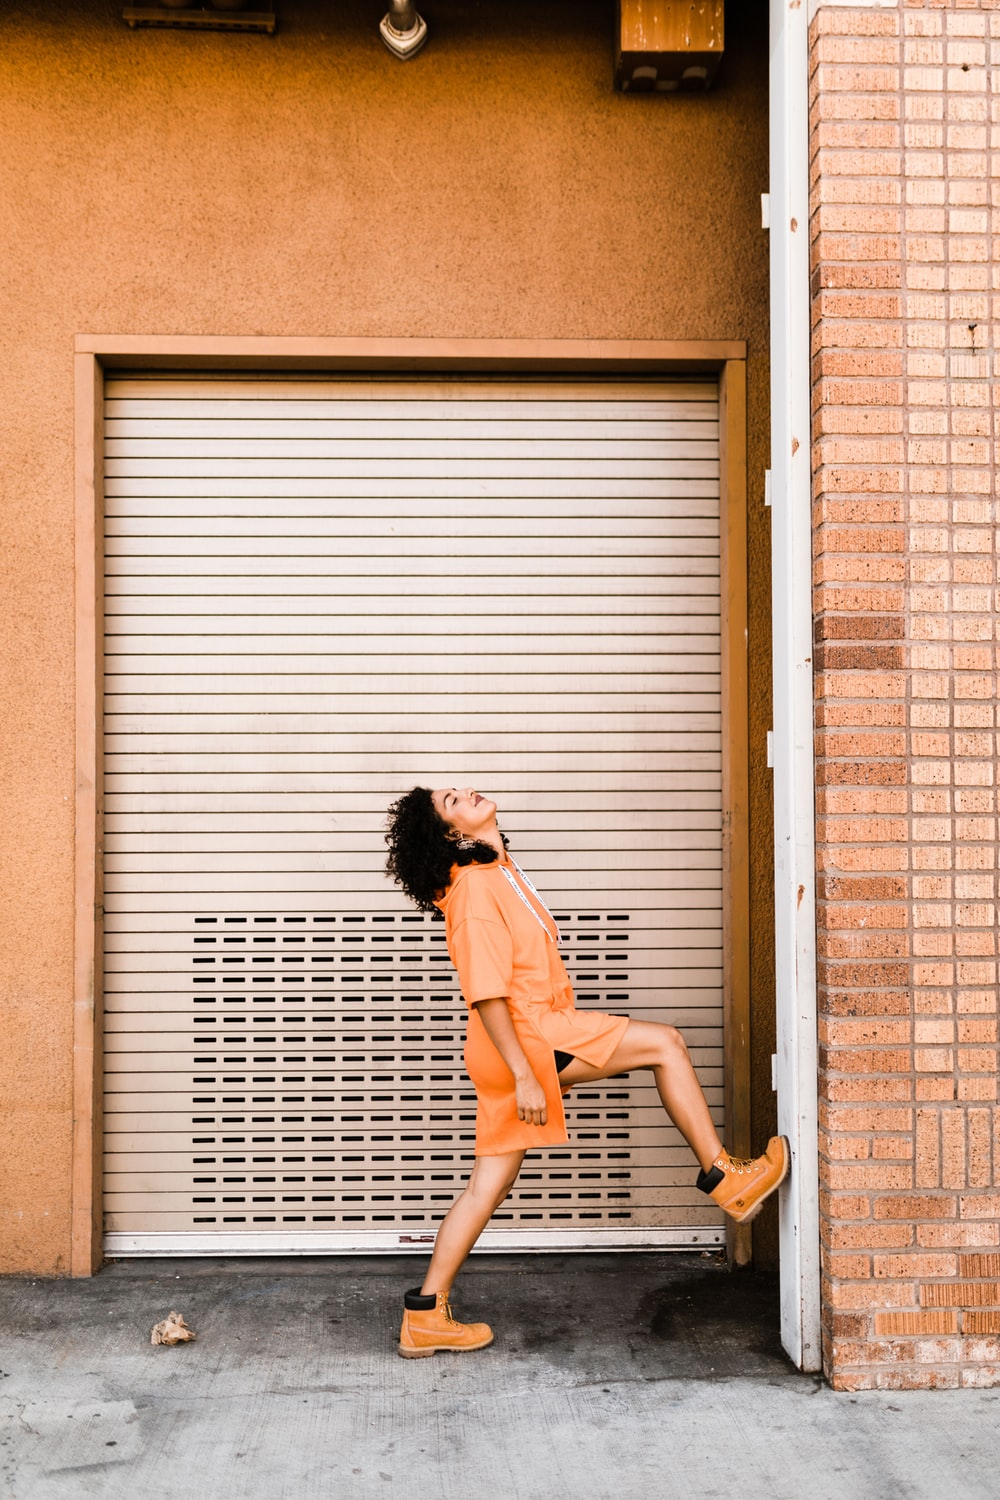 woman stepping her right foot on wall near roller shutter